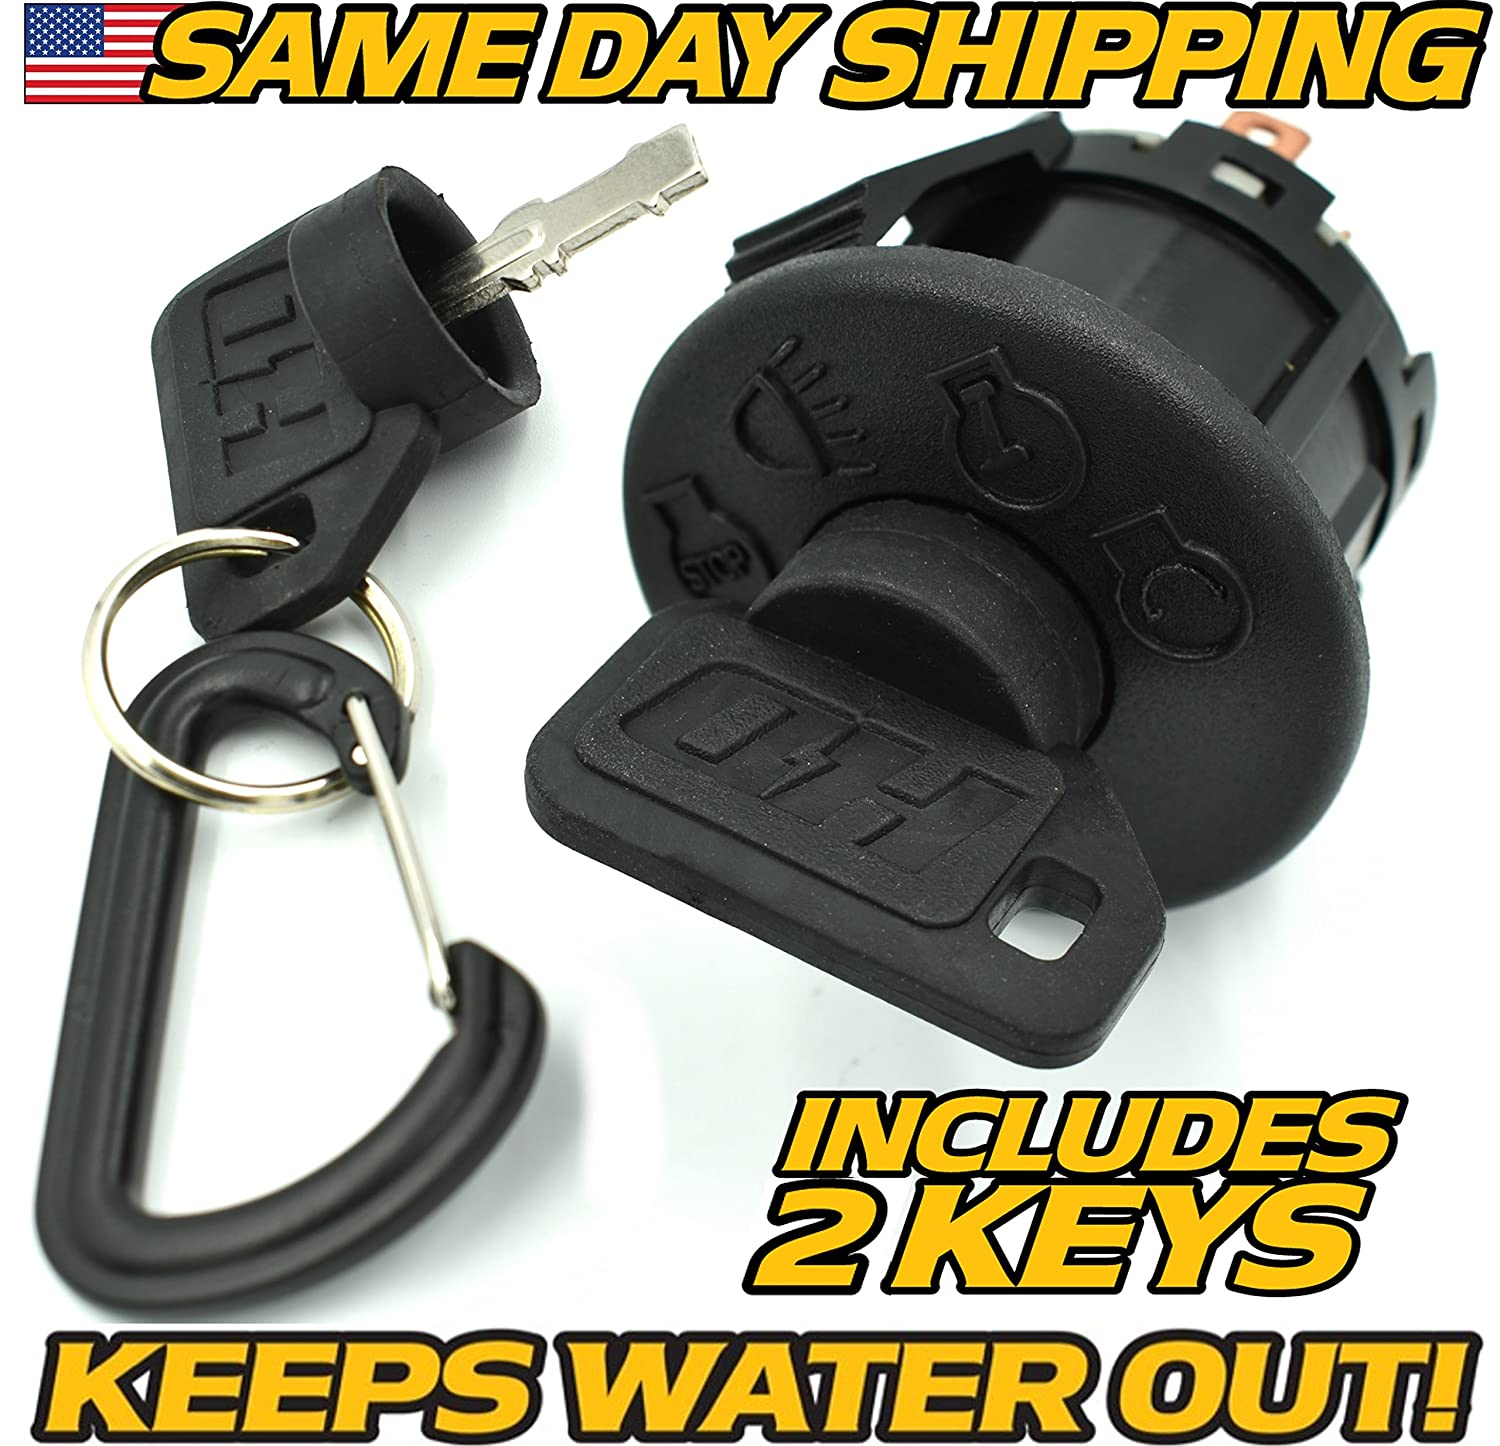 John Deere Ignition Switch D100, D105, D110, D120, D125, D130, D140, D150, D155, 2 Upgraded Key & Free Keychain - HD Switch